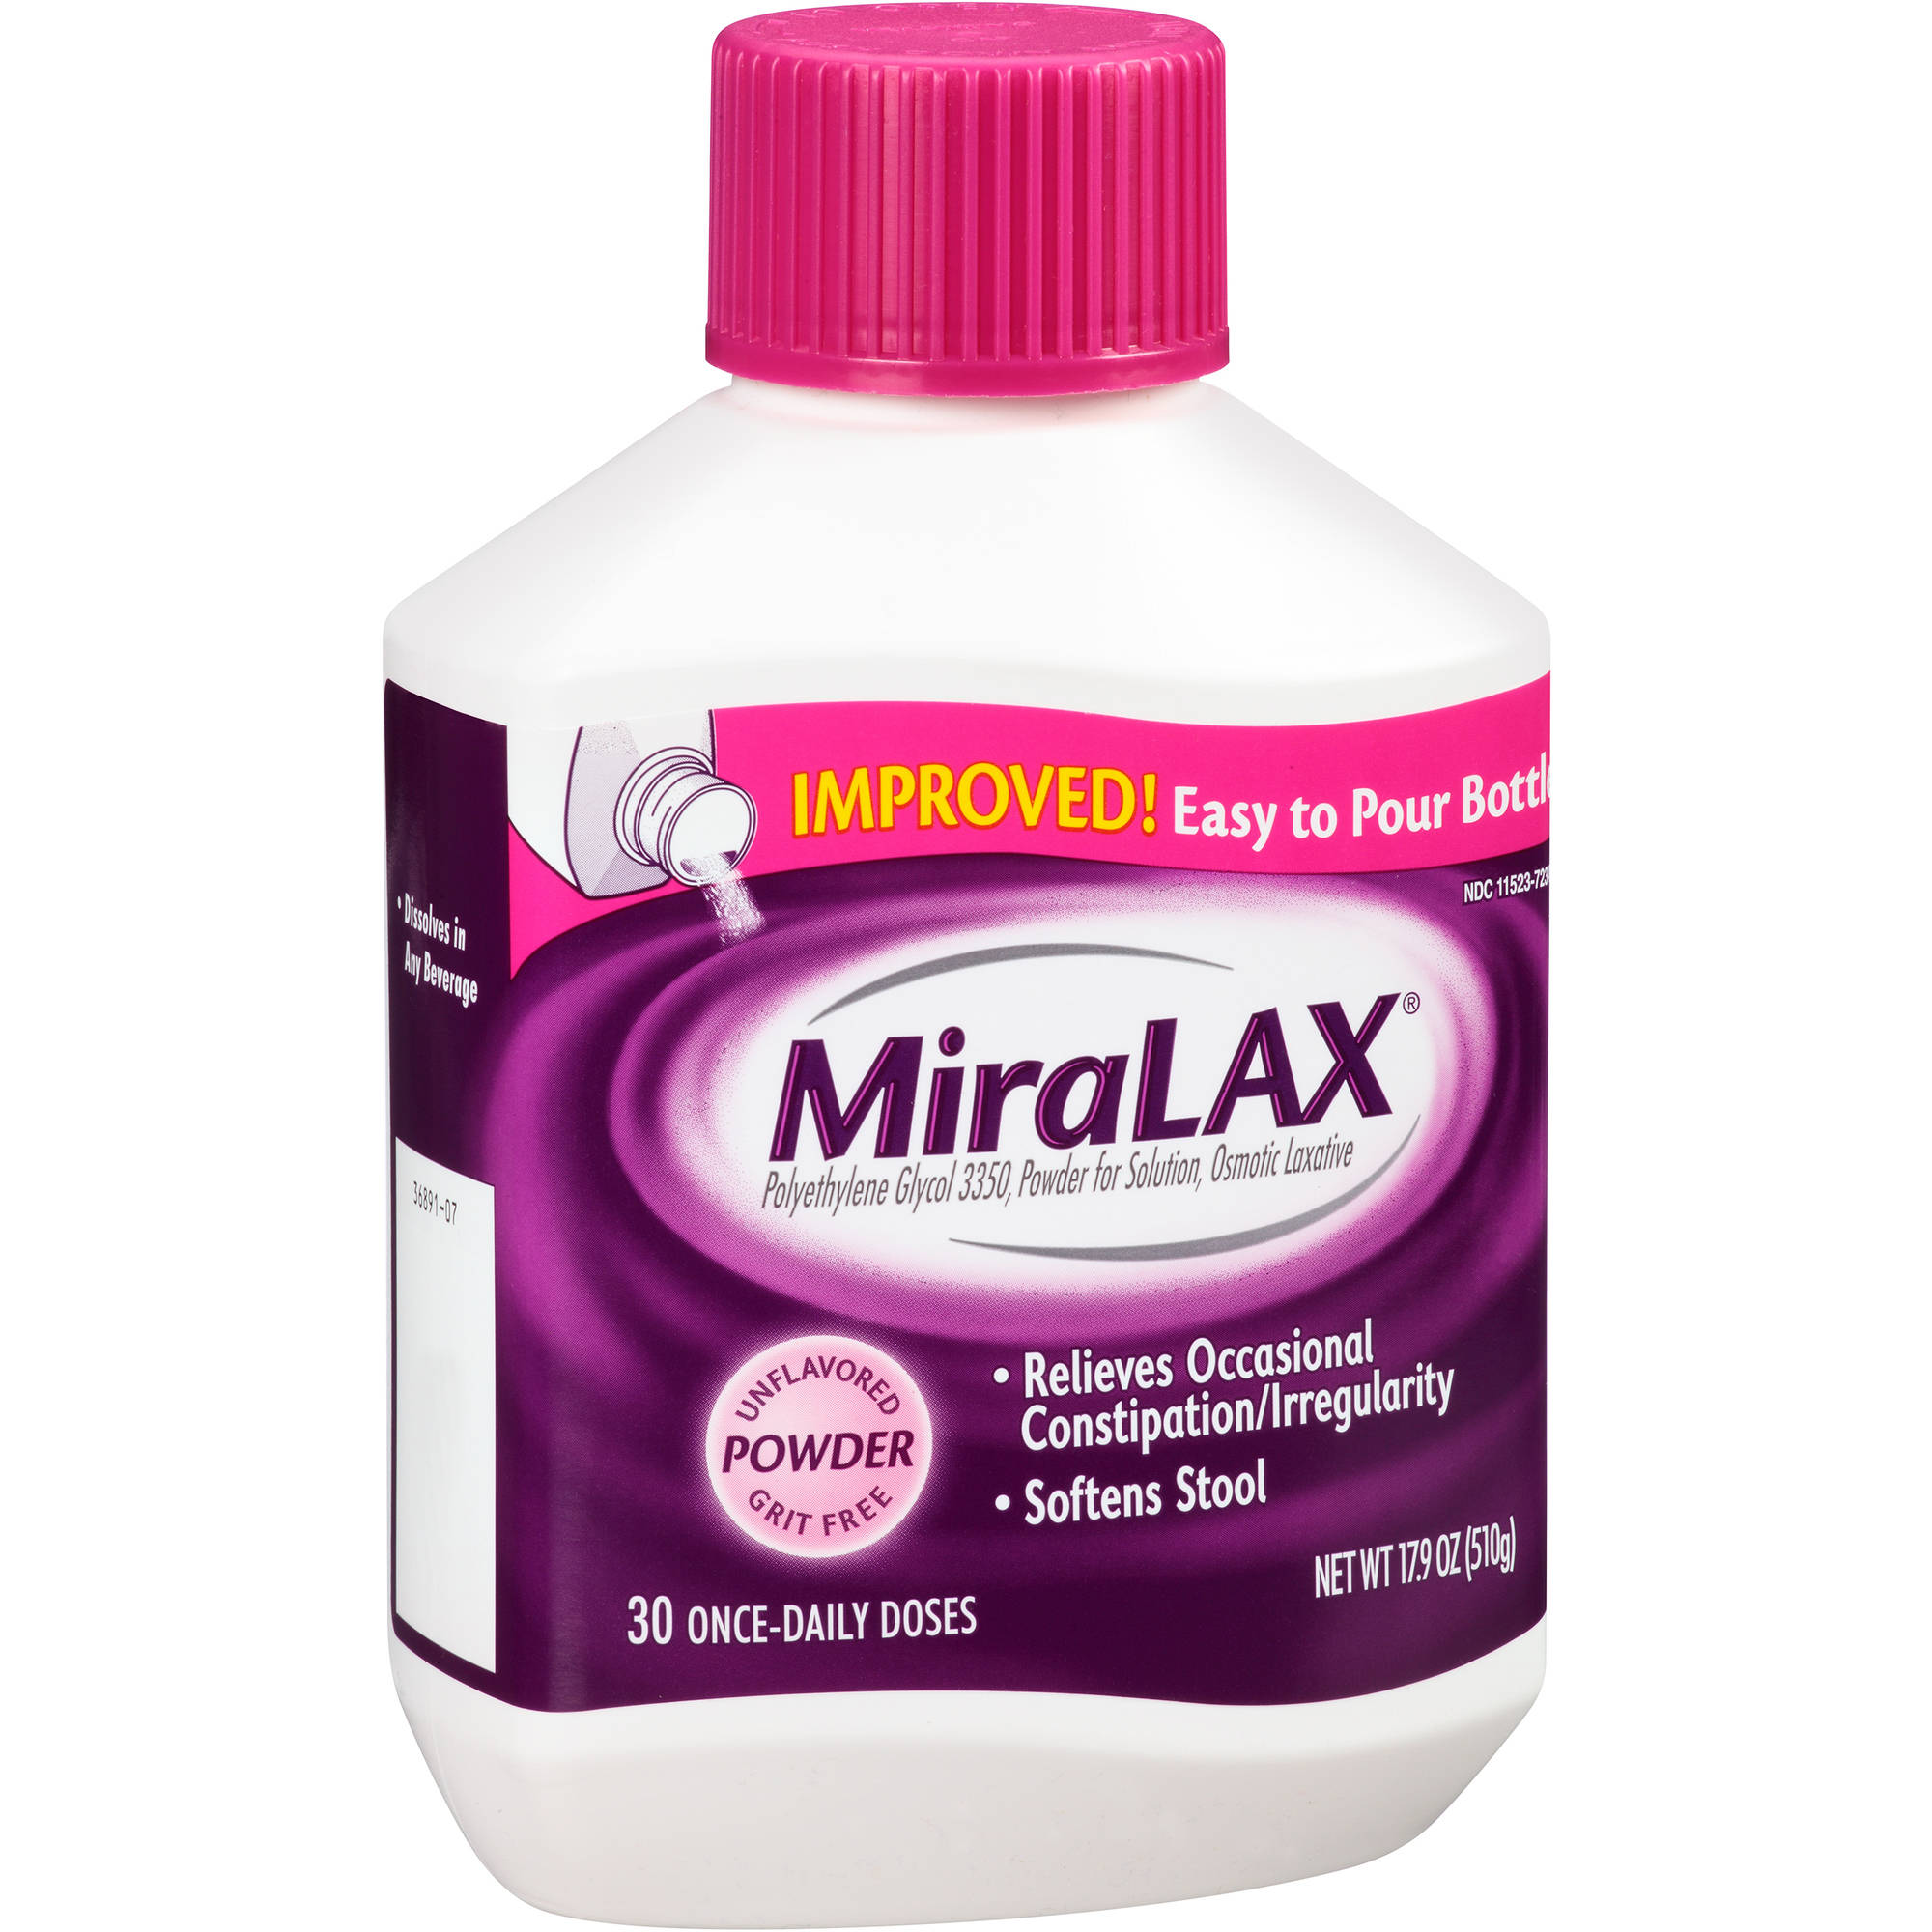 MiraLAX Powder Laxative, 17.9 oz